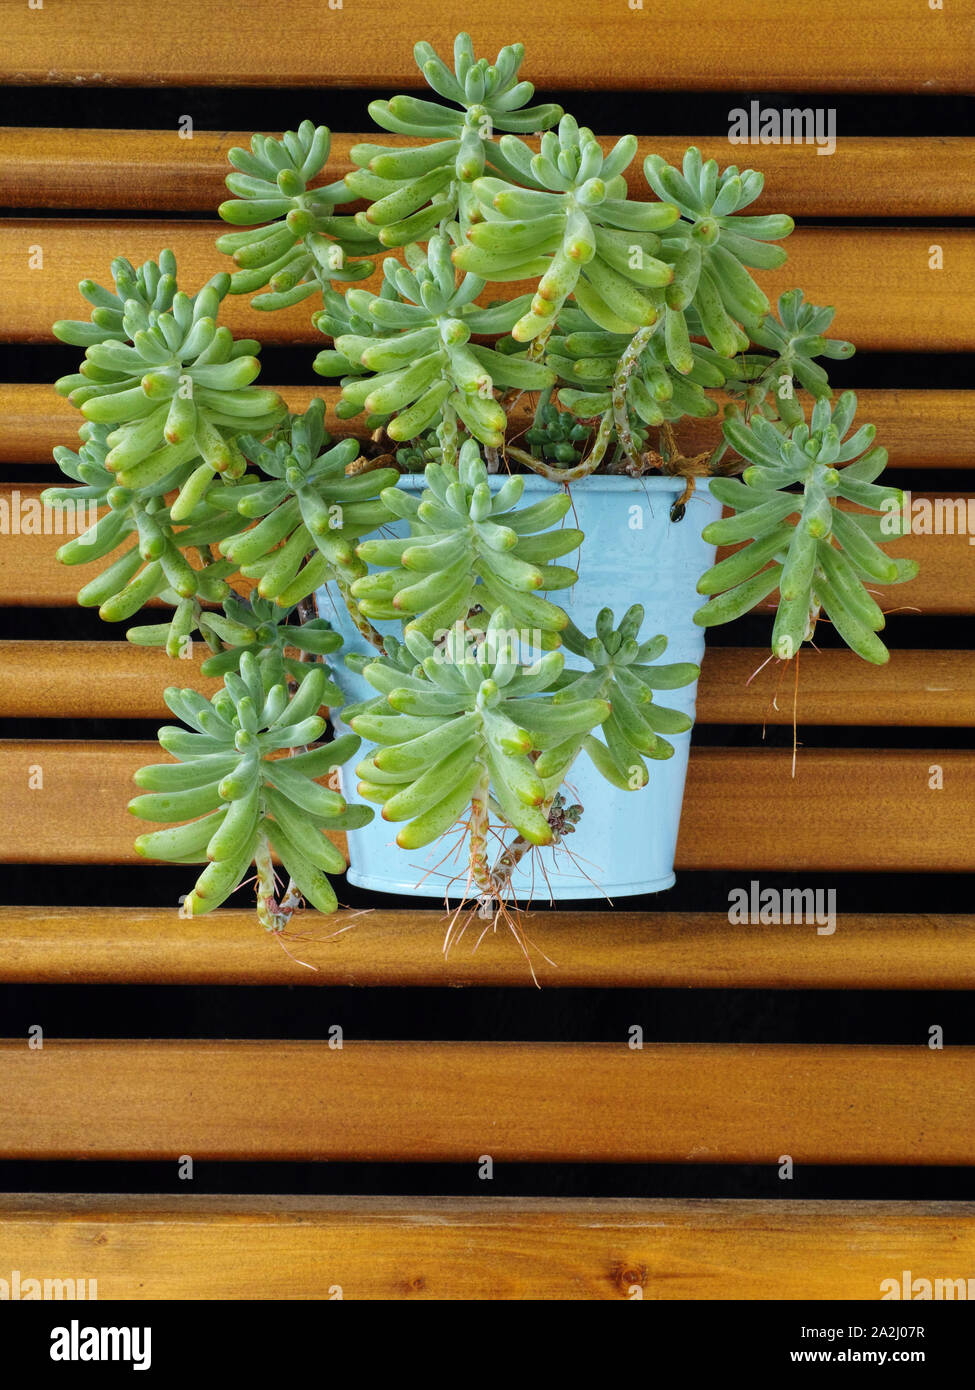 Hanging Succulent High Resolution Stock Photography And Images Alamy